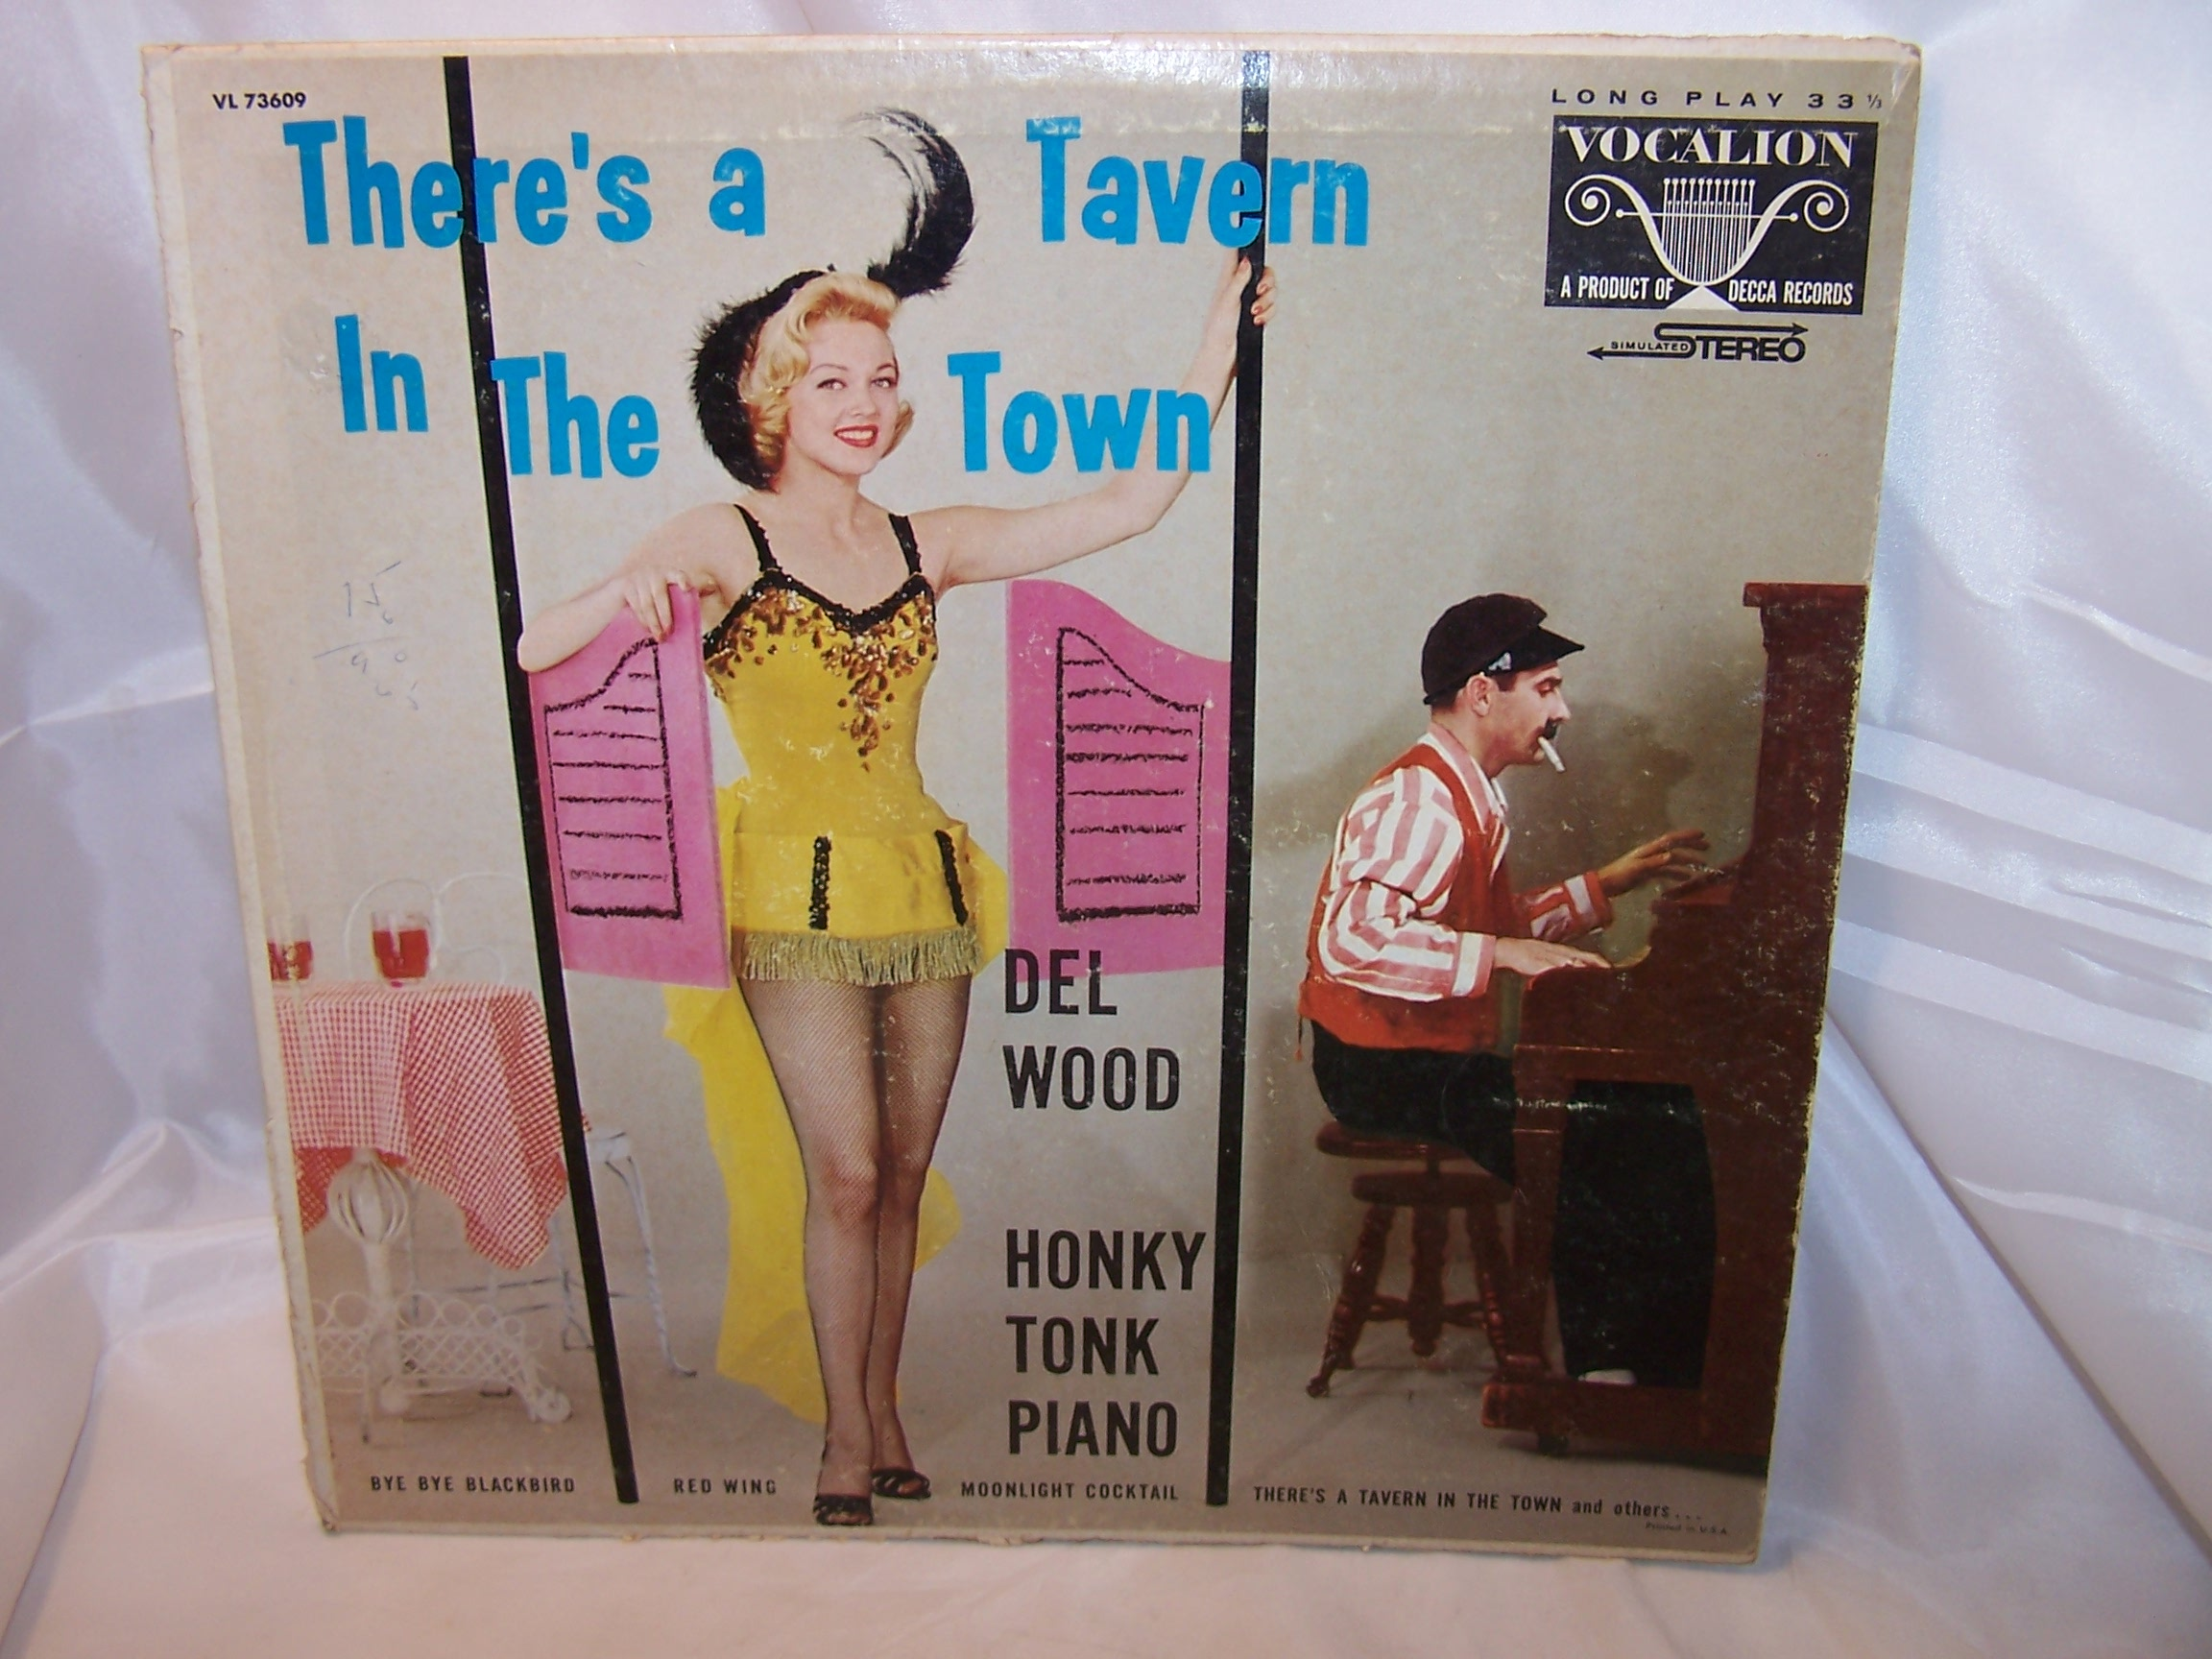 Theres a Tavern in the Town, Record Cover for Framing